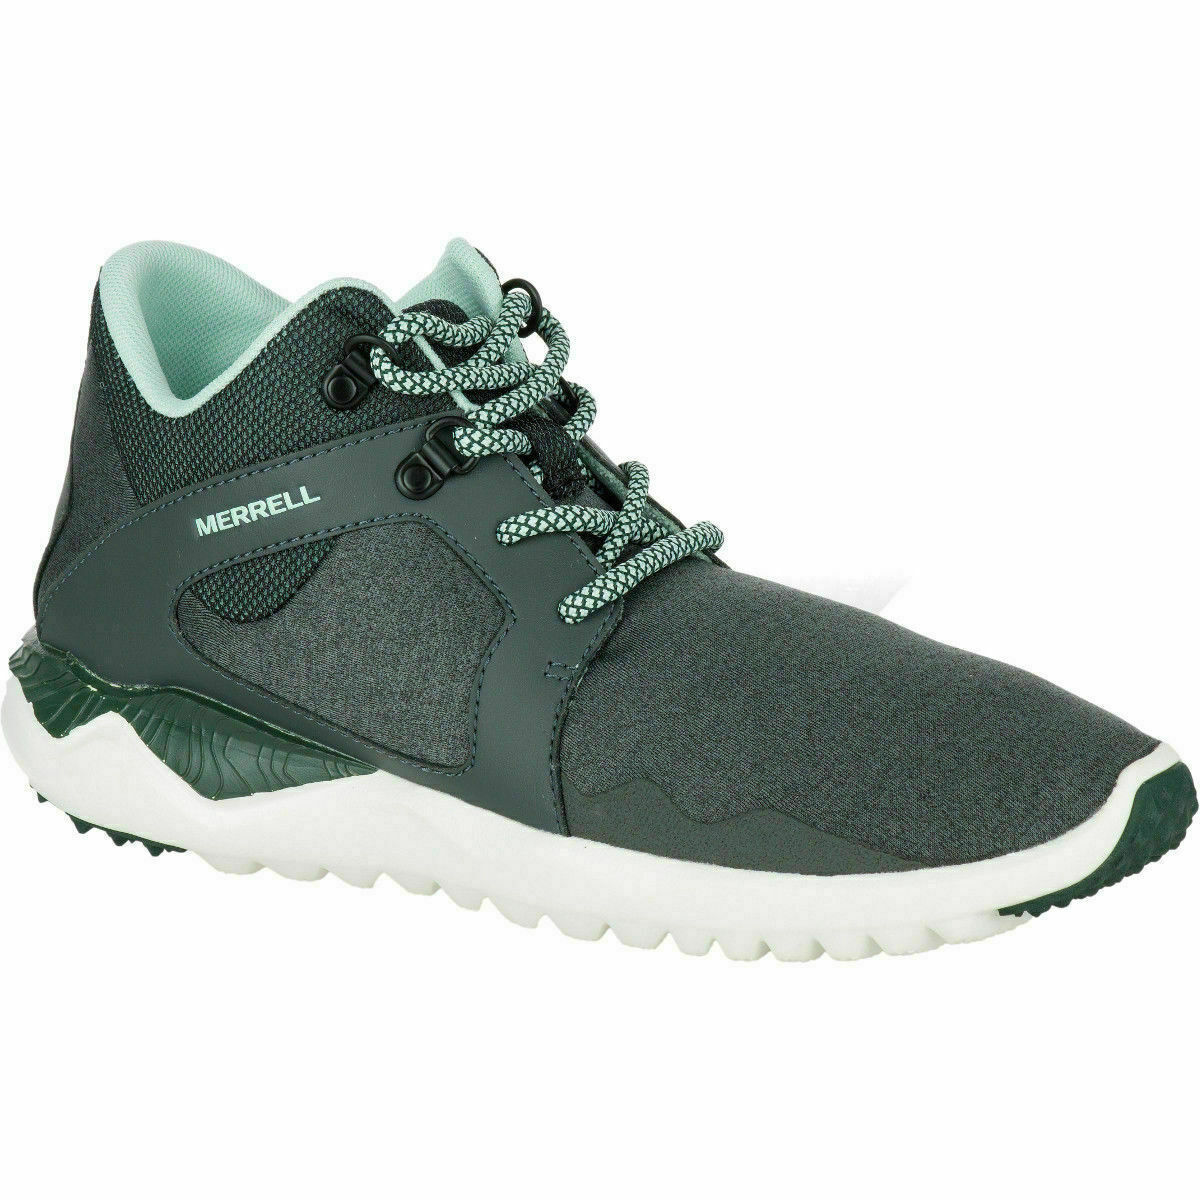 LADIES MERRELL 1SIX8 MID SEDONA SAGE RUNNING TRAINERS SPORTS CASUAL SHOES 3-8